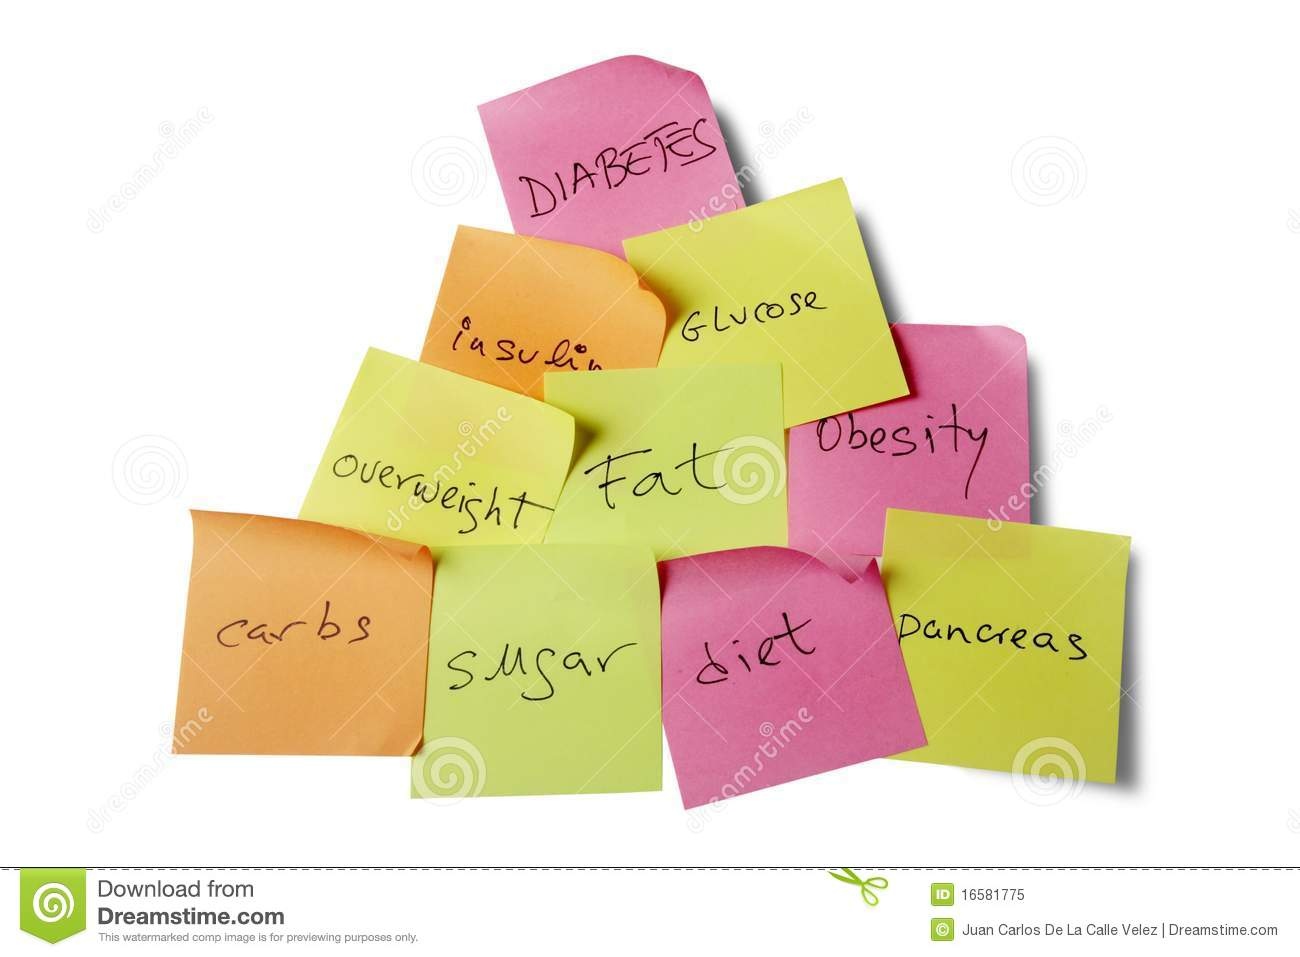 Diabetes Causes And Risks Royalty Free Stock Photo - Image: 16581775